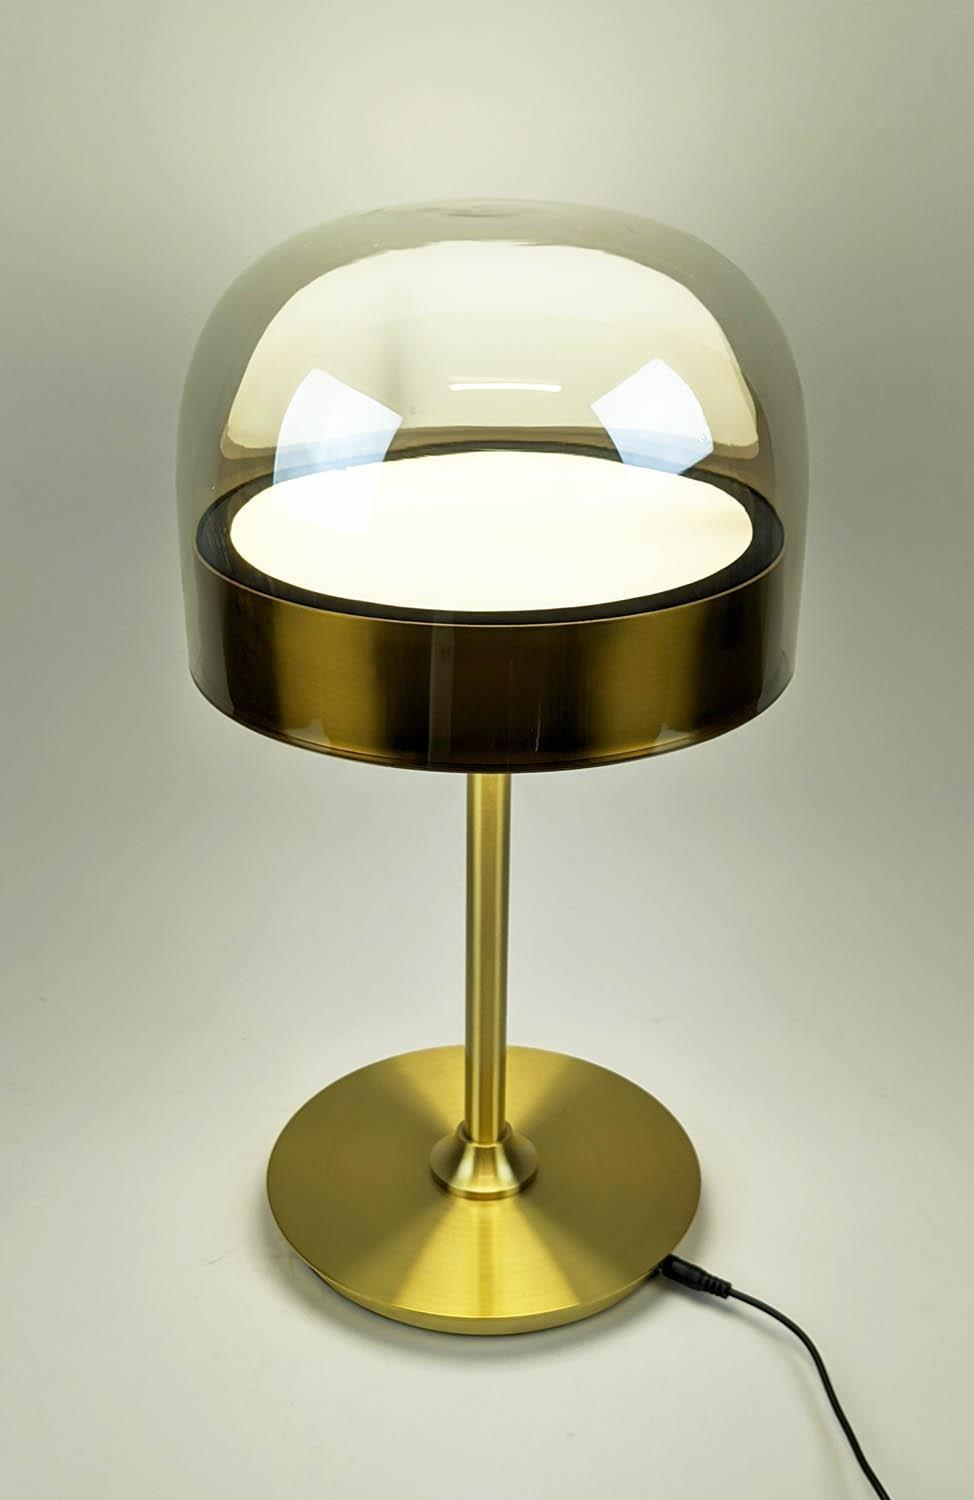 TABLE LAMP, 1950's Italian style, 45cm H. - Image 2 of 4